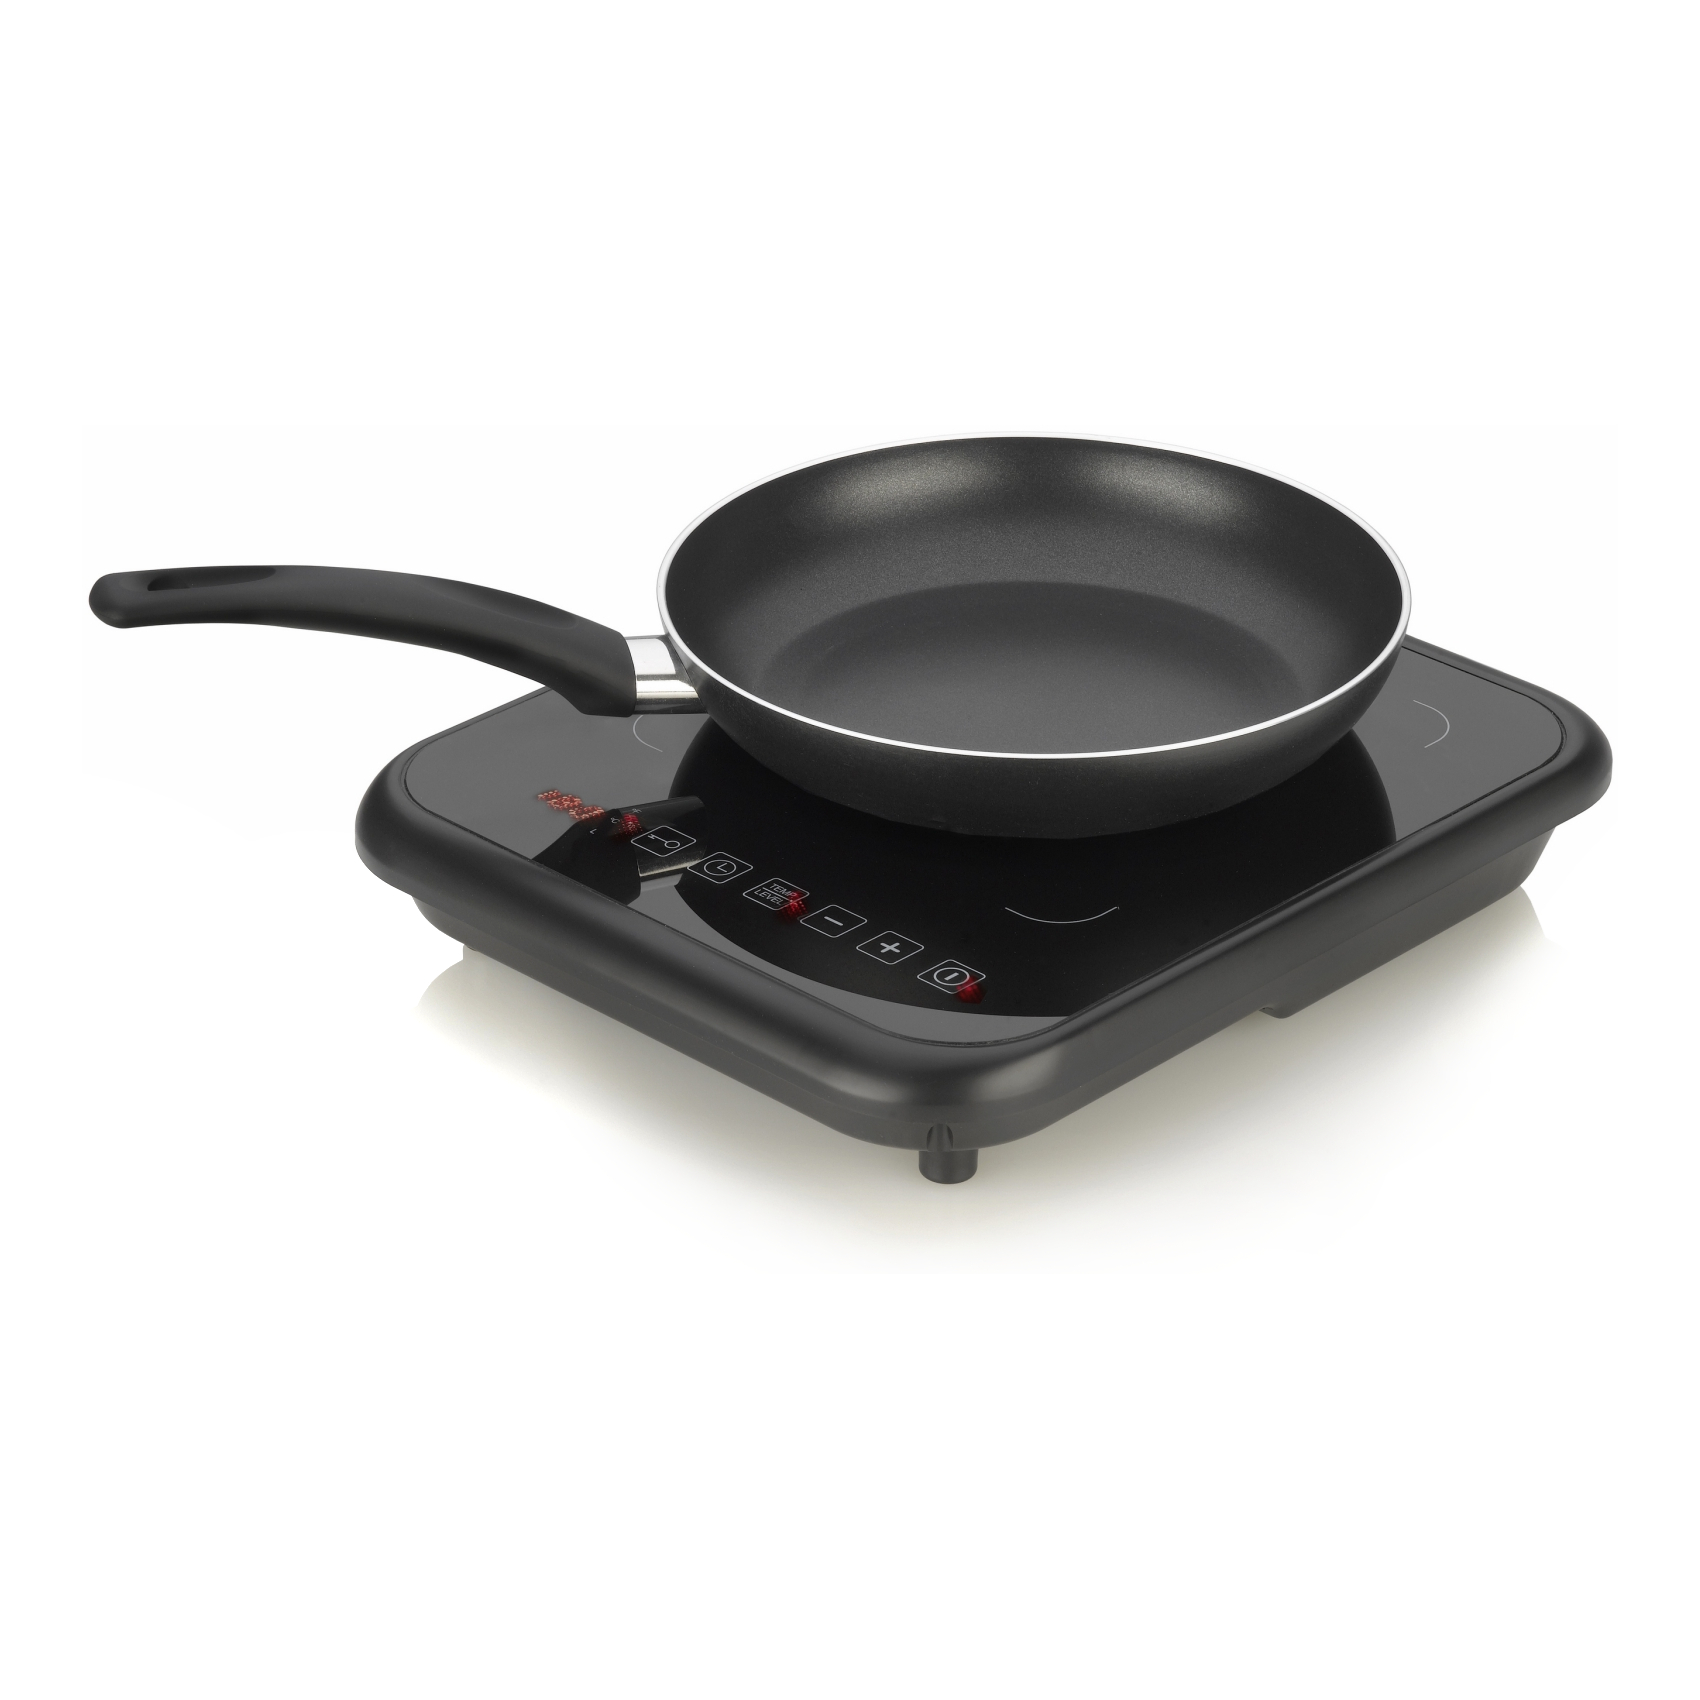 Fagor 2X Induction Countertop Cooktop Set with 9.5 Inch Skillet